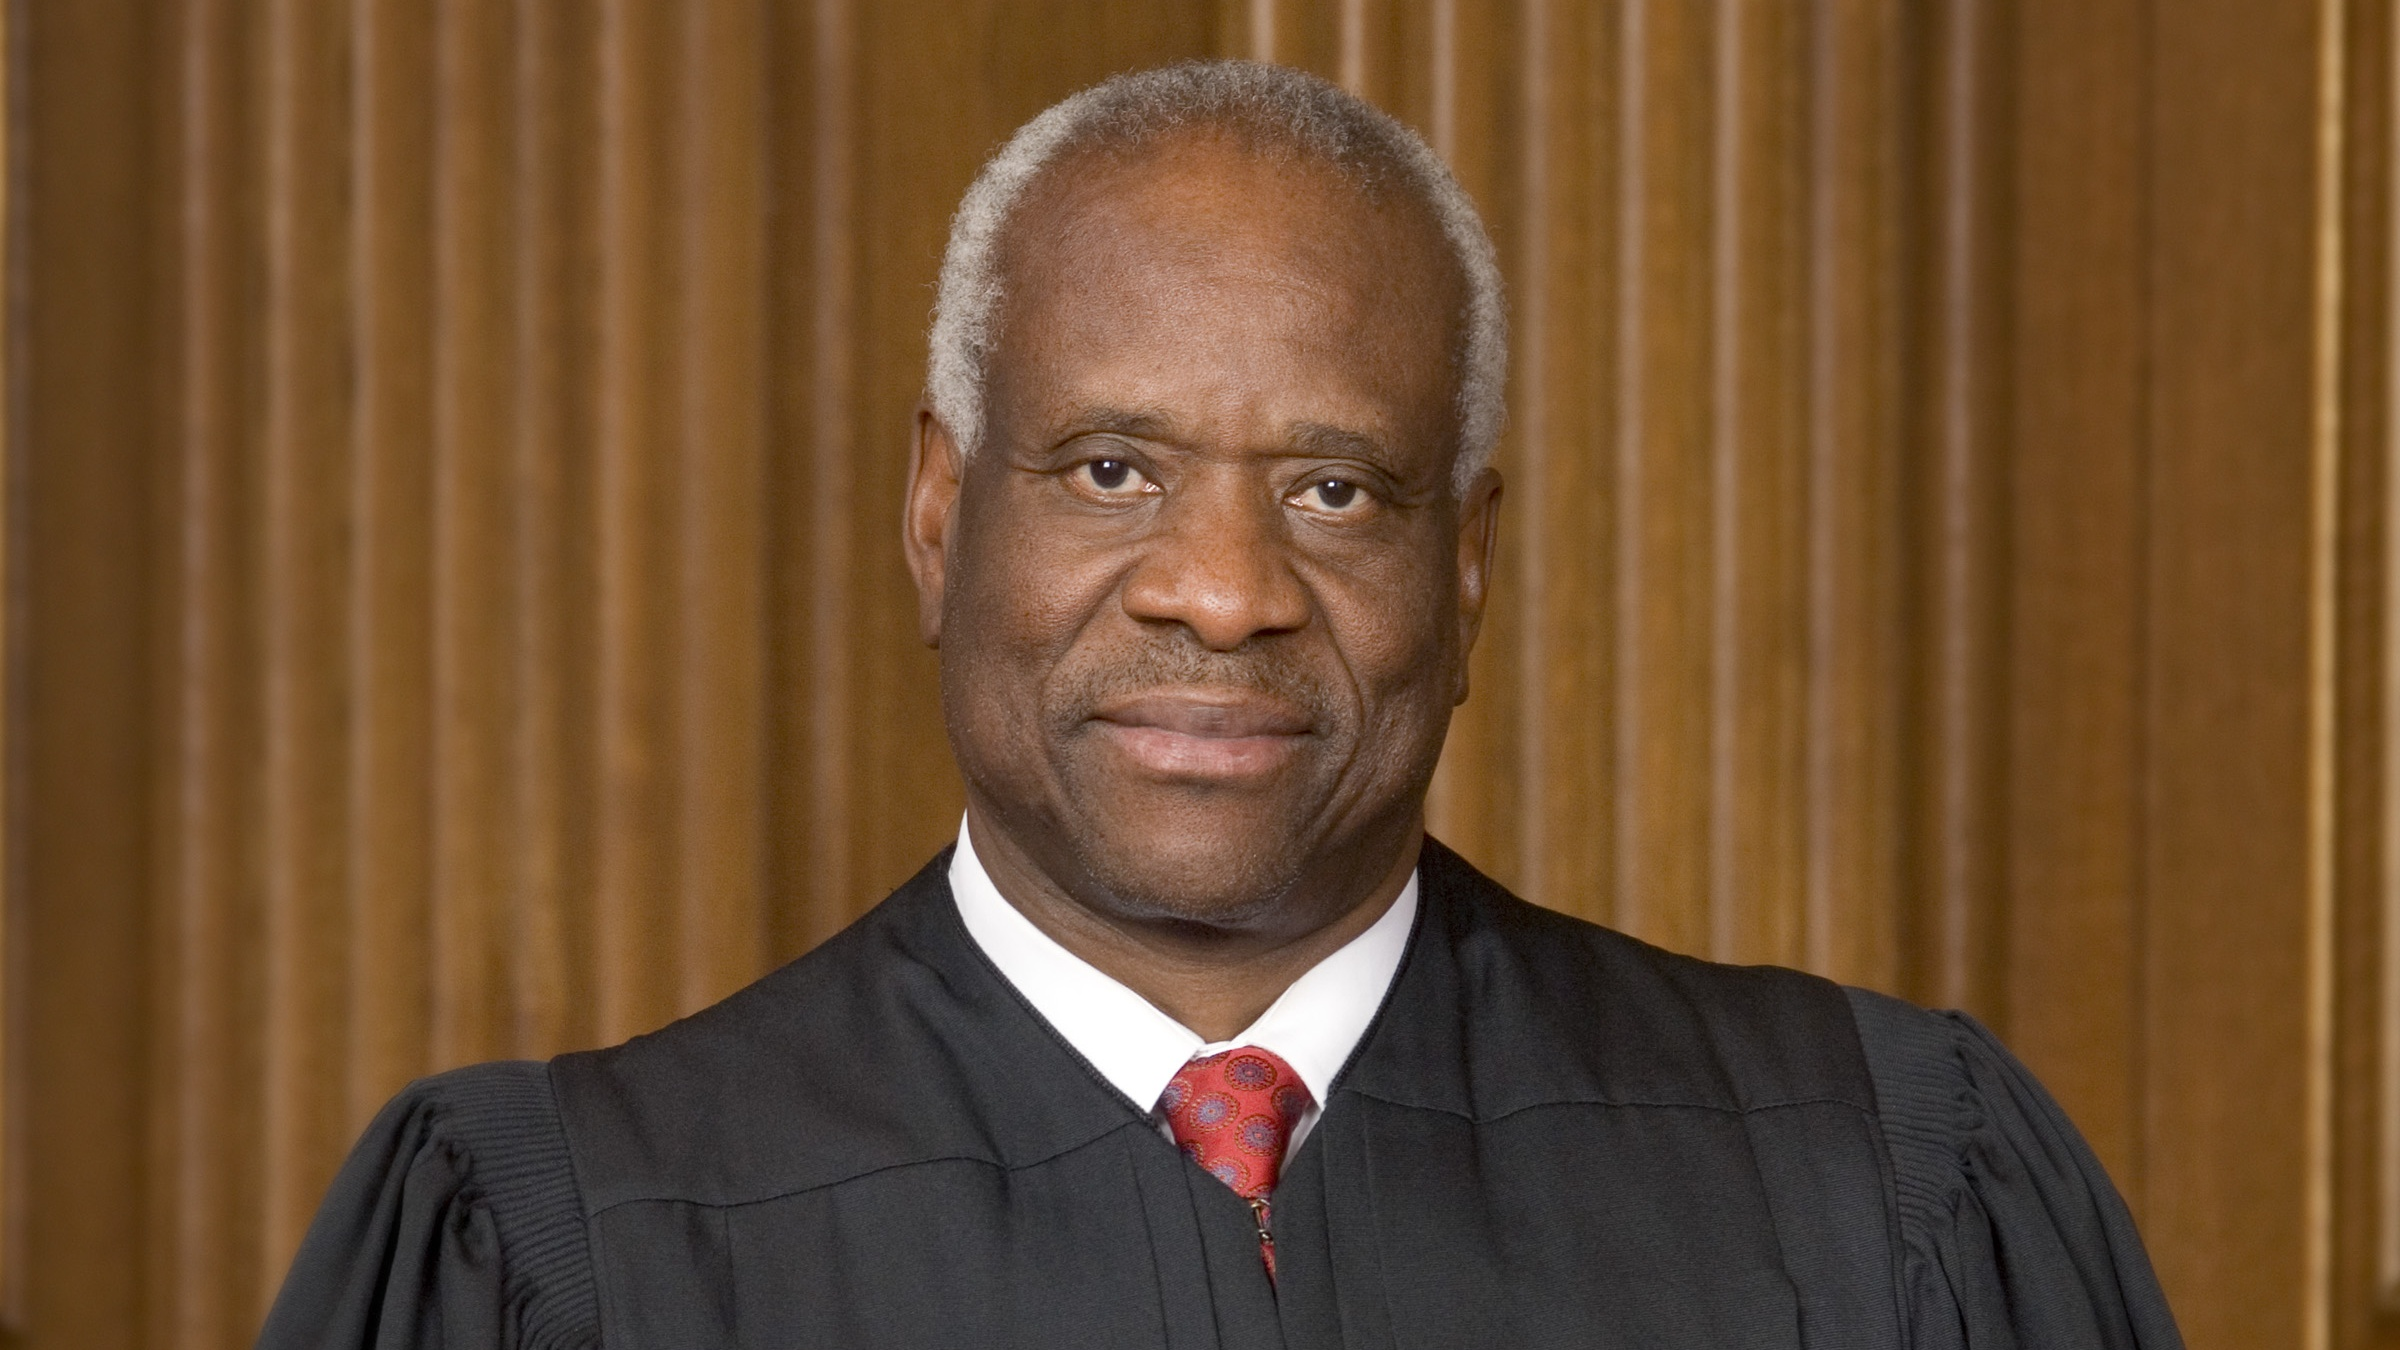 U.S. Supreme Court Justice Clarence Thomas.